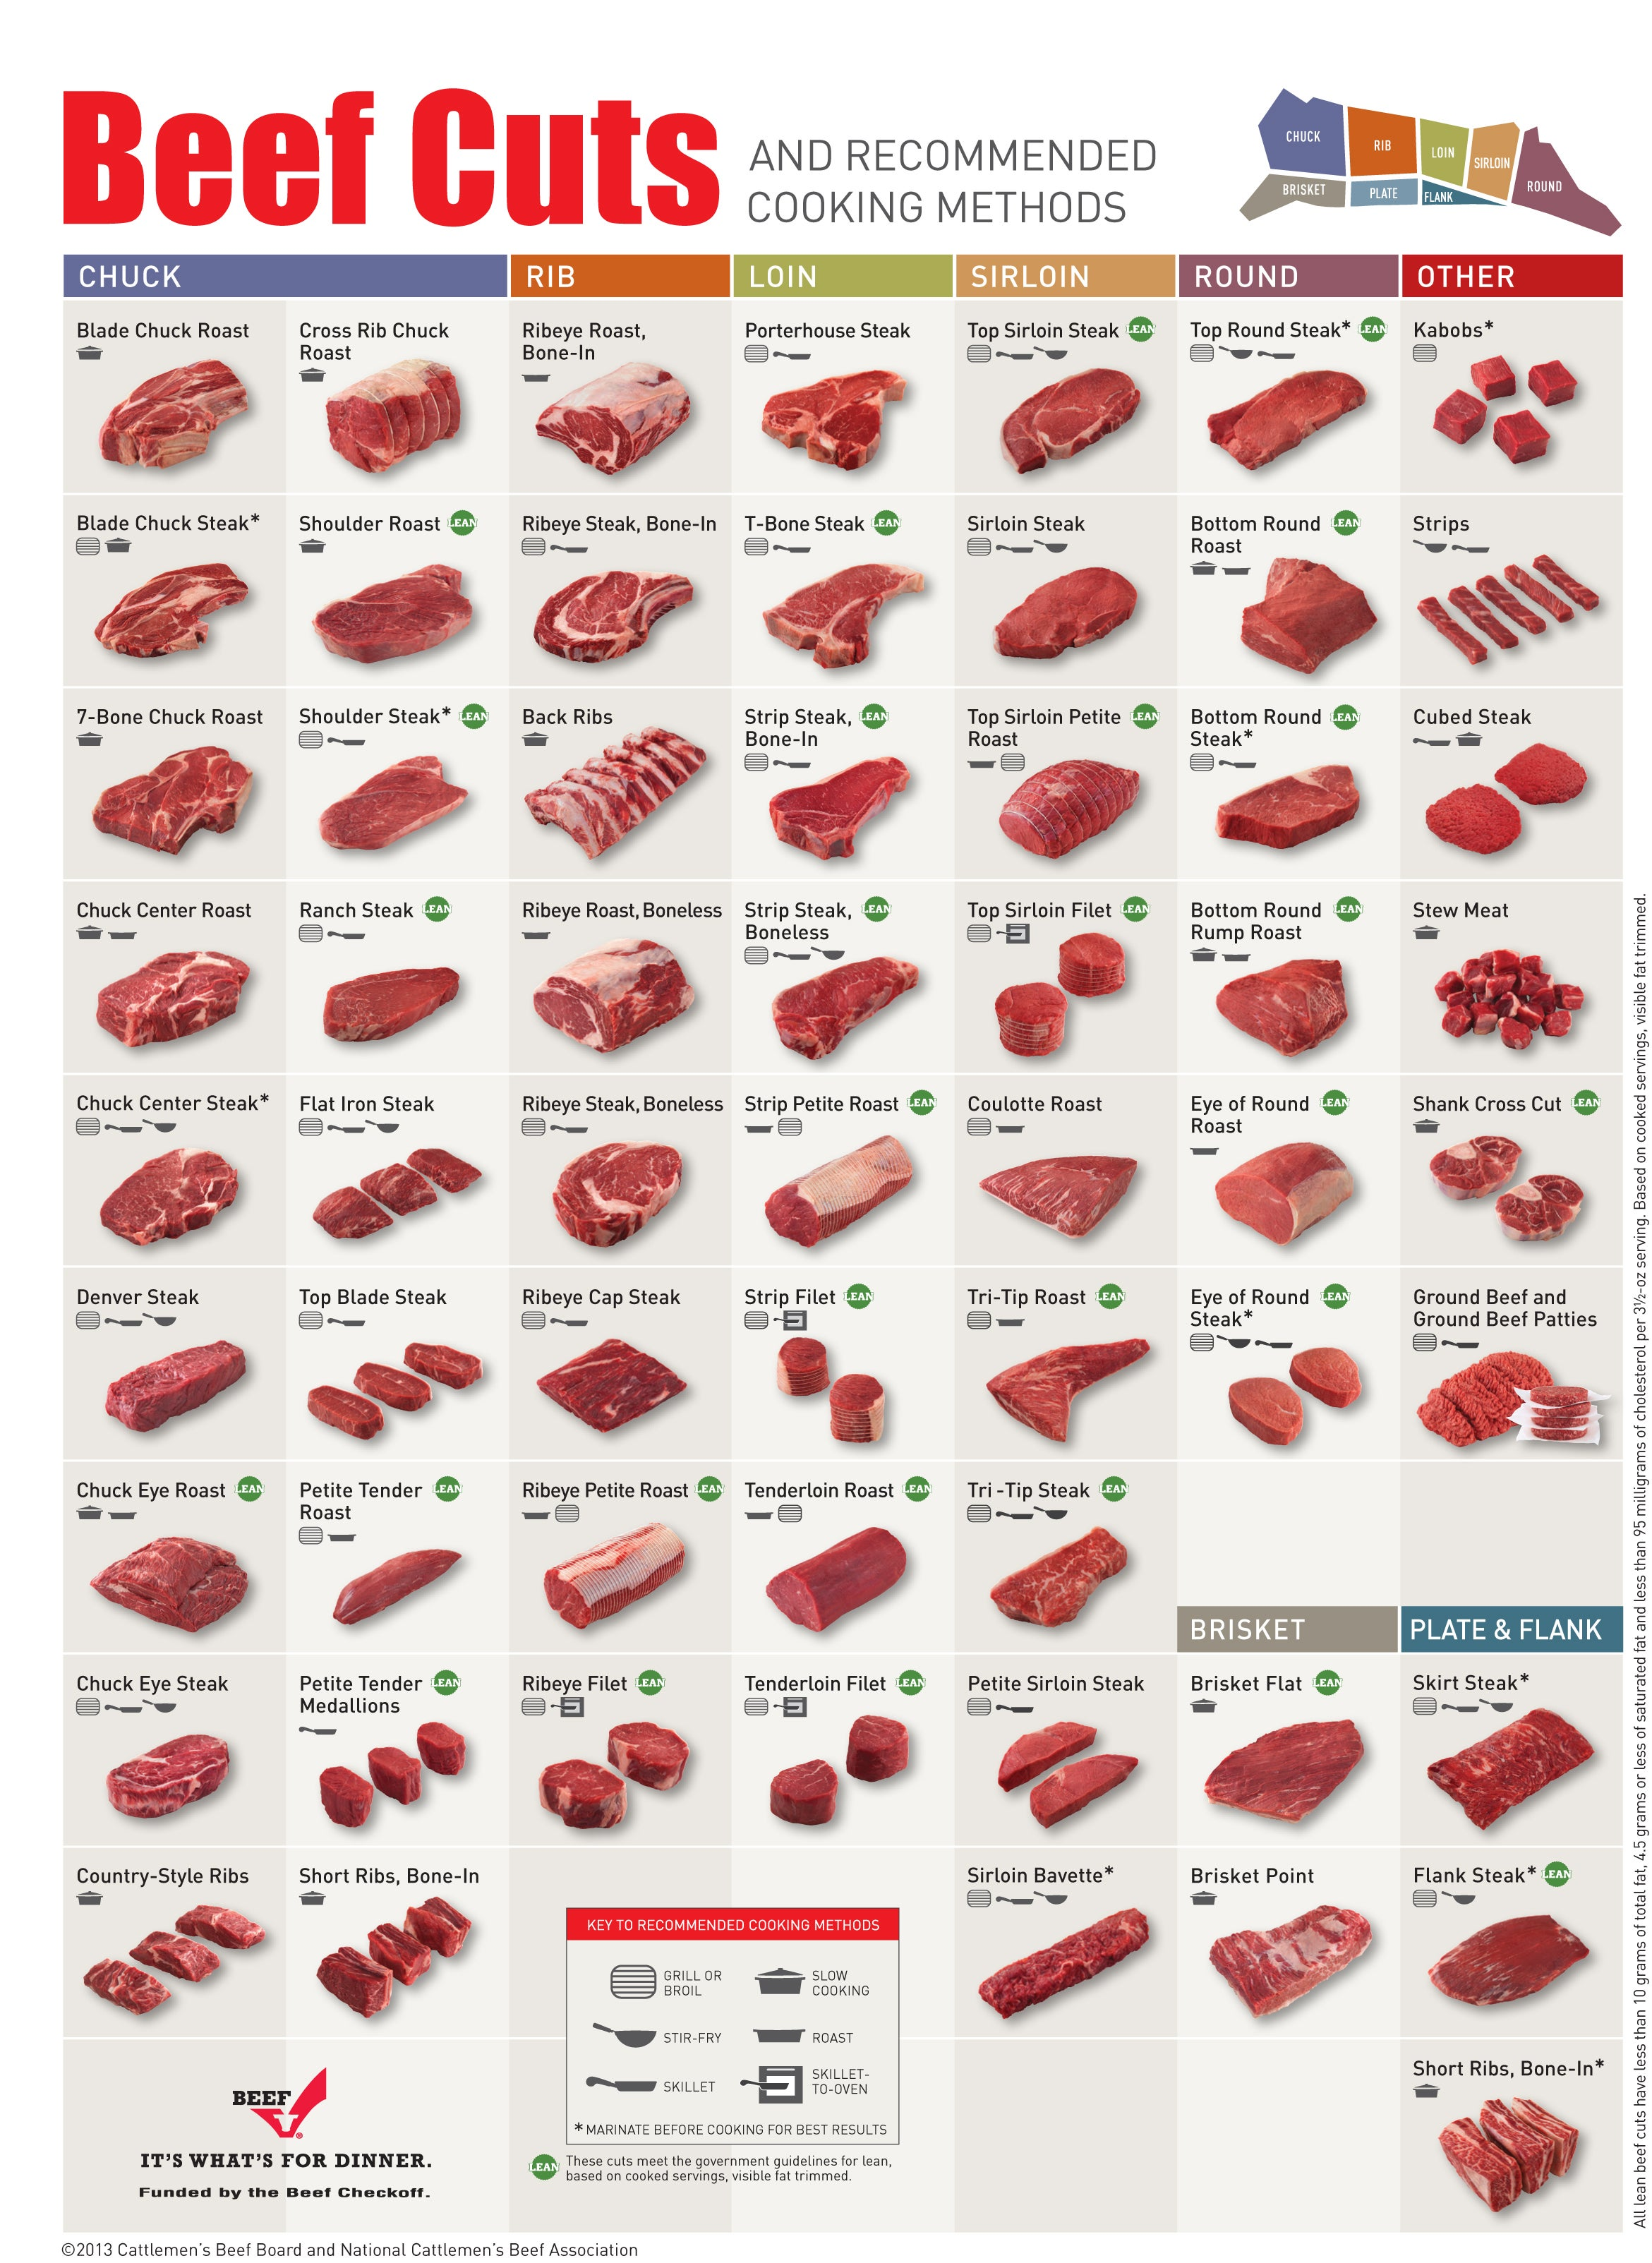 The Best Way To Cook Different Cuts Of Beef In One Chart Manual Guide